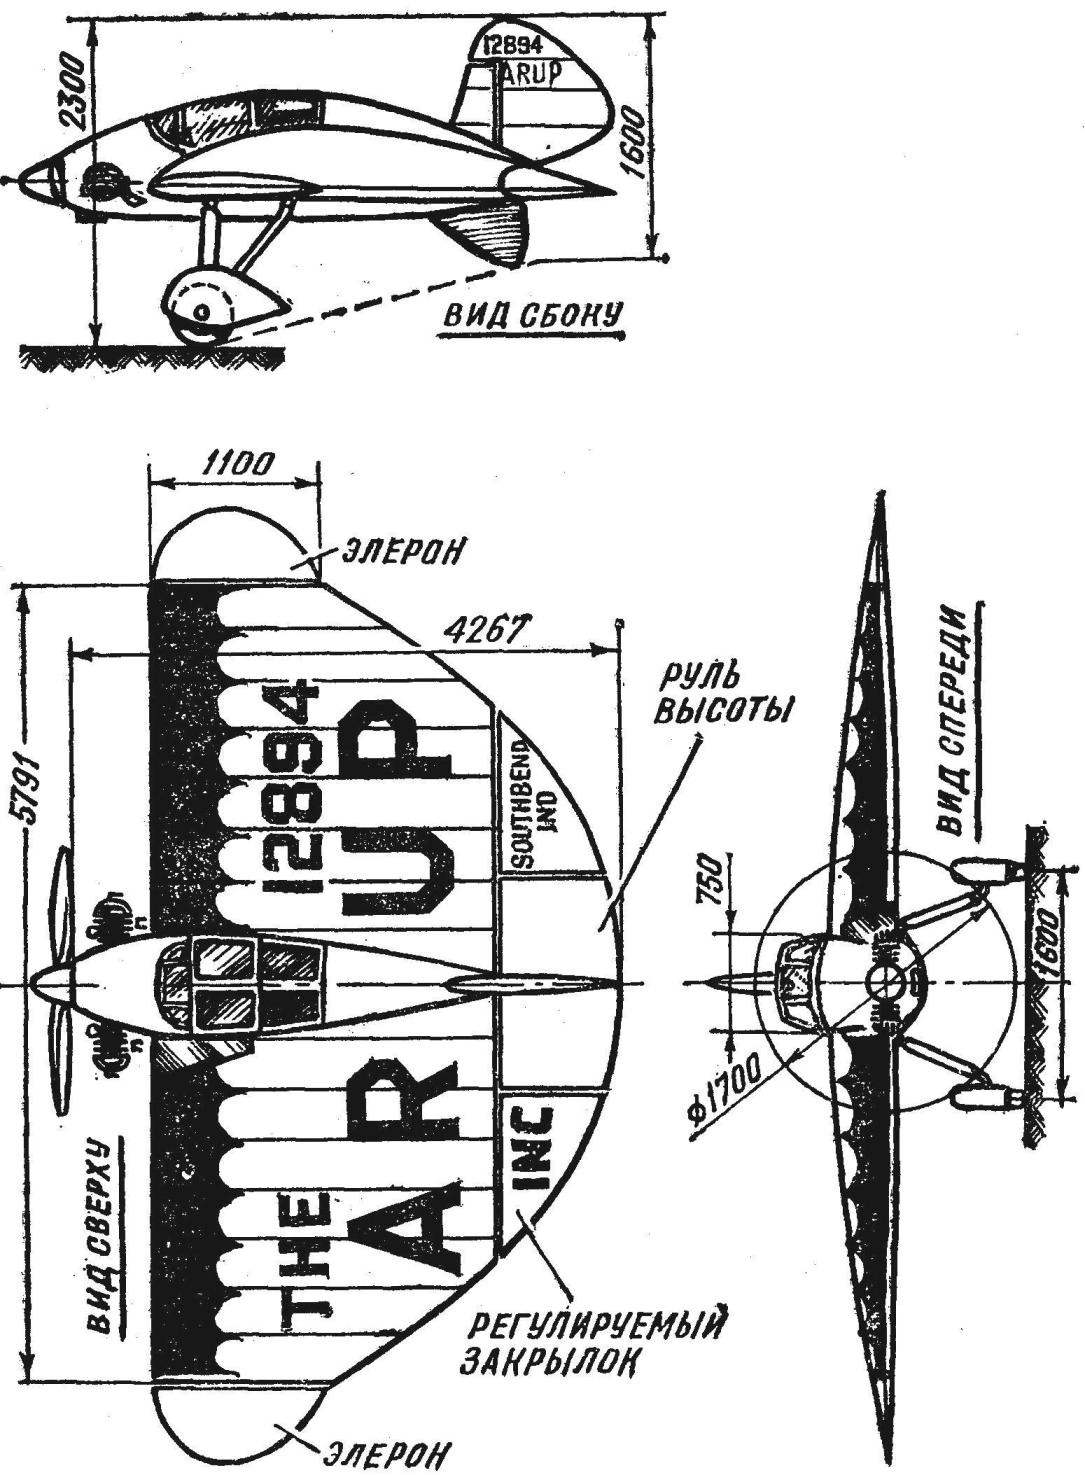 Fig. 2. The Plane